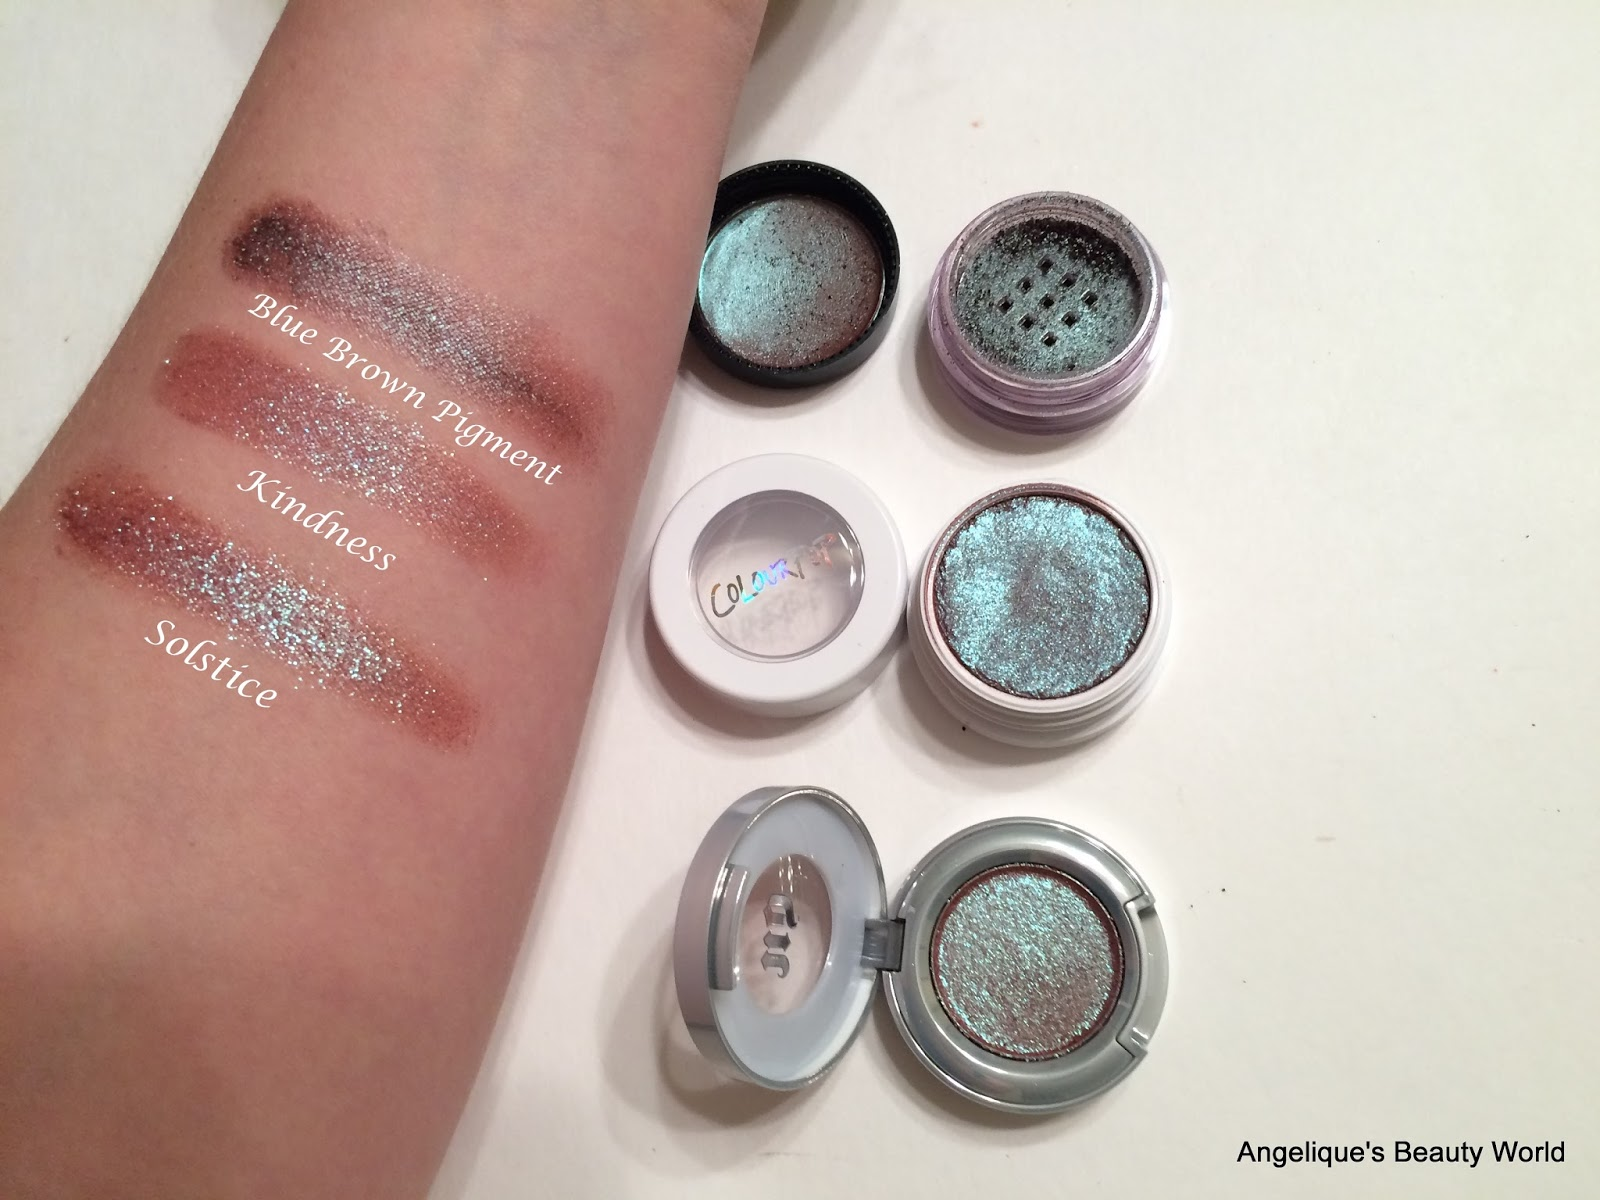 Get the best makeup deals and bargains. Check out what's on sale right now on the Coastal Scents Sale Page.